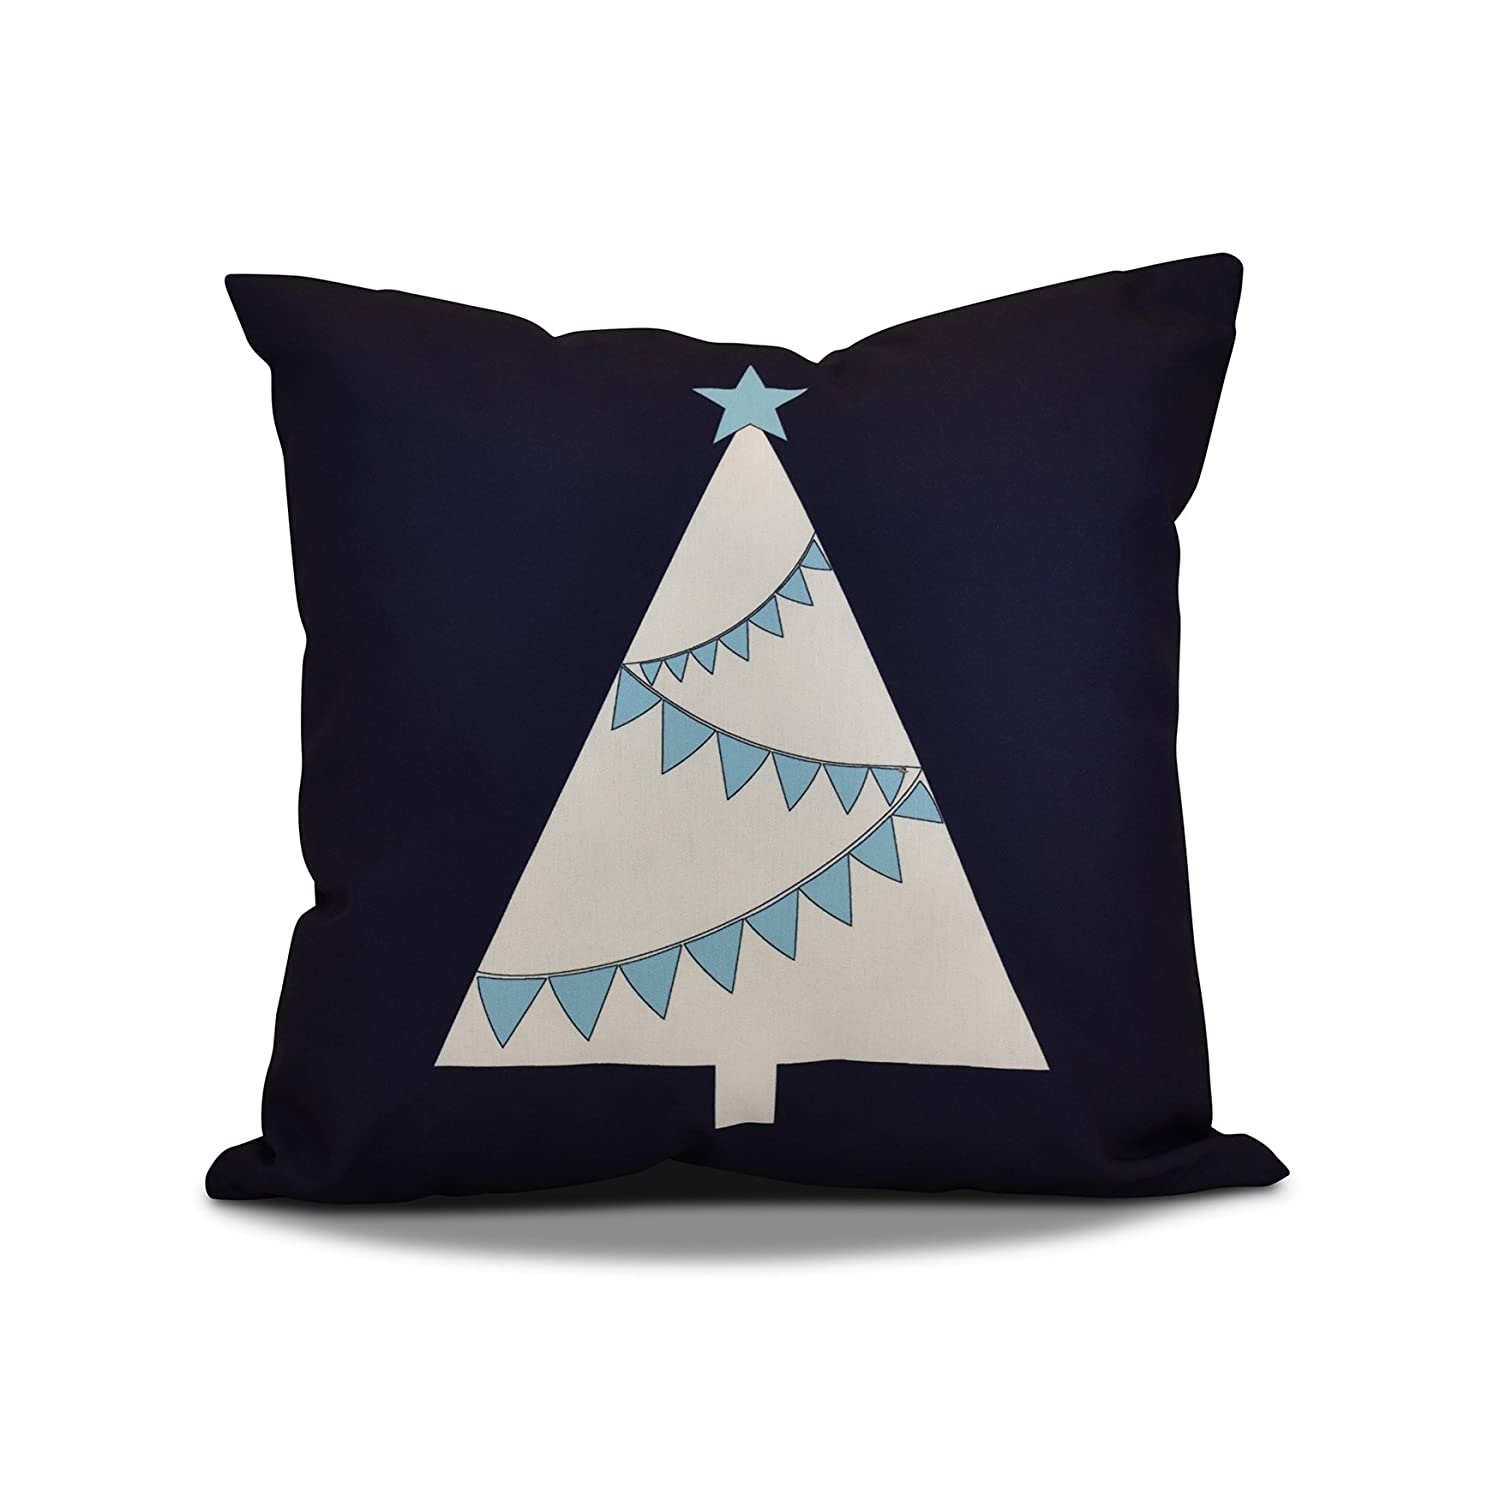 E by design O5PHGN705GY1RE6-16 Printed Outdoor Pillow